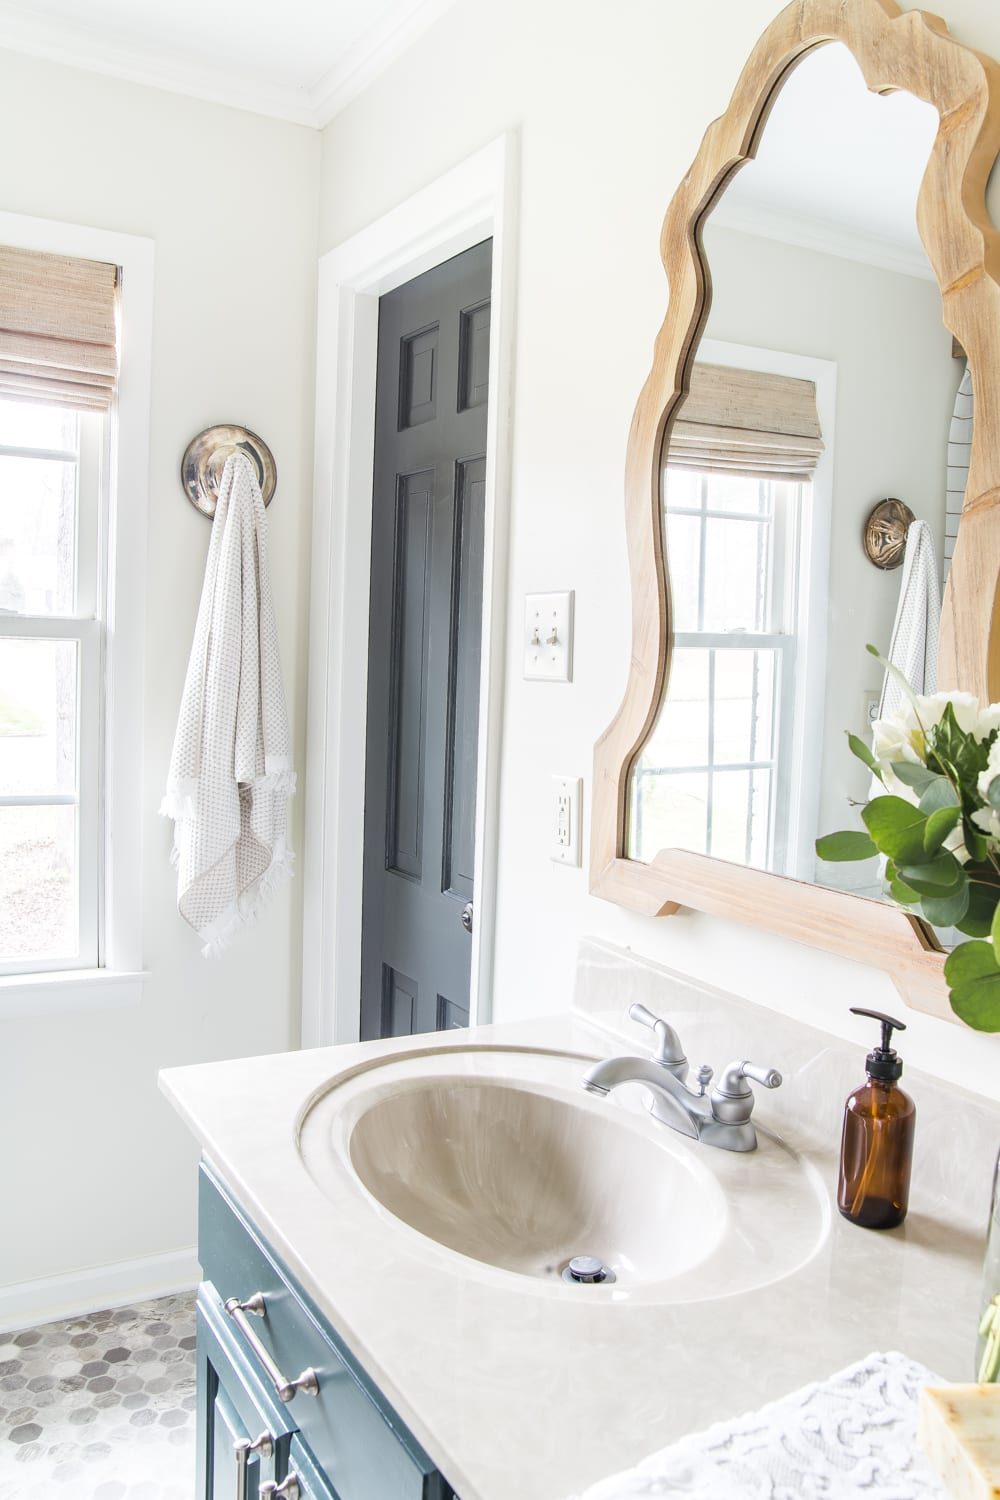 Budget Master Bathroom Refresh Reveal | paint colors: Benjamin Moore Wrought Iron and Benjamin Moore White Dove